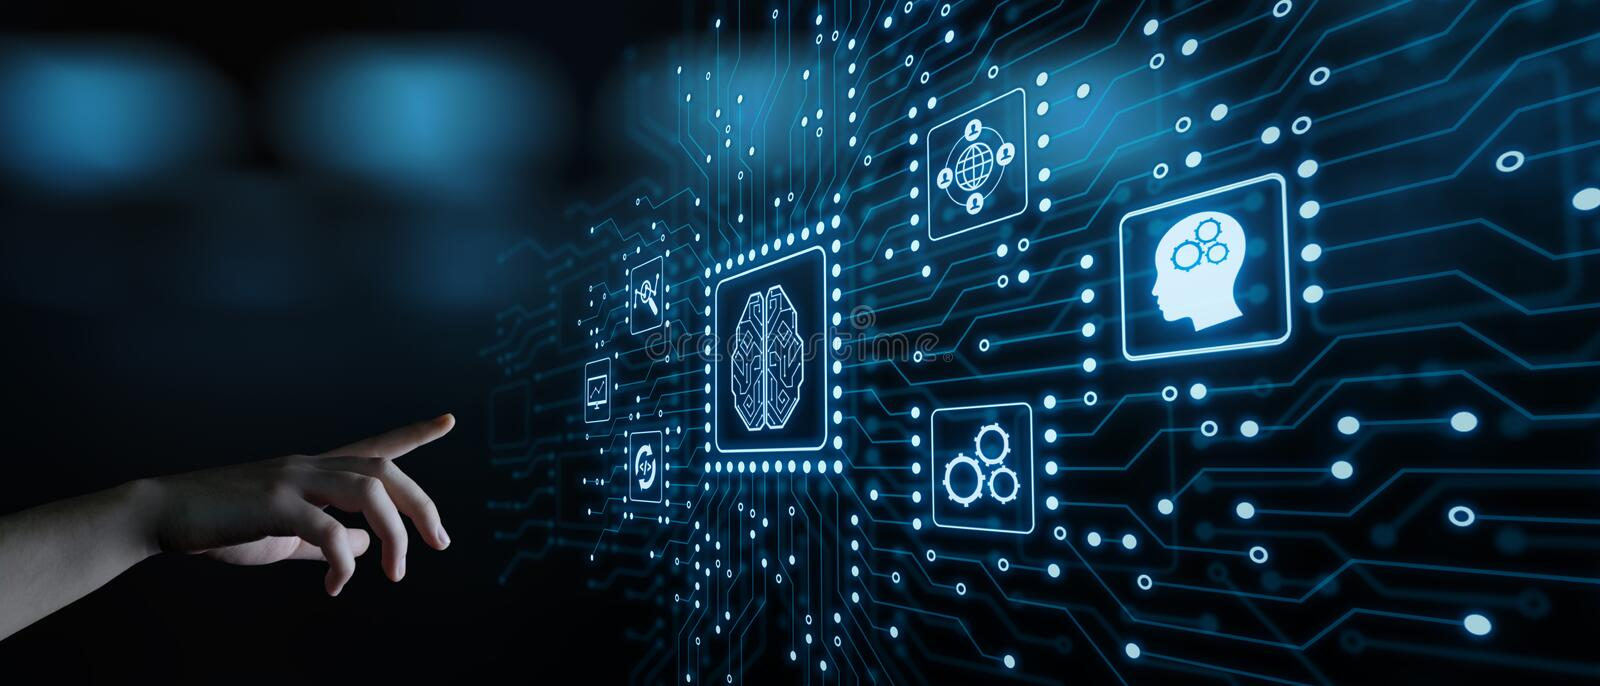 Artificial intelligence Machine Learning Business Internet Technology Concept royalty free stock images